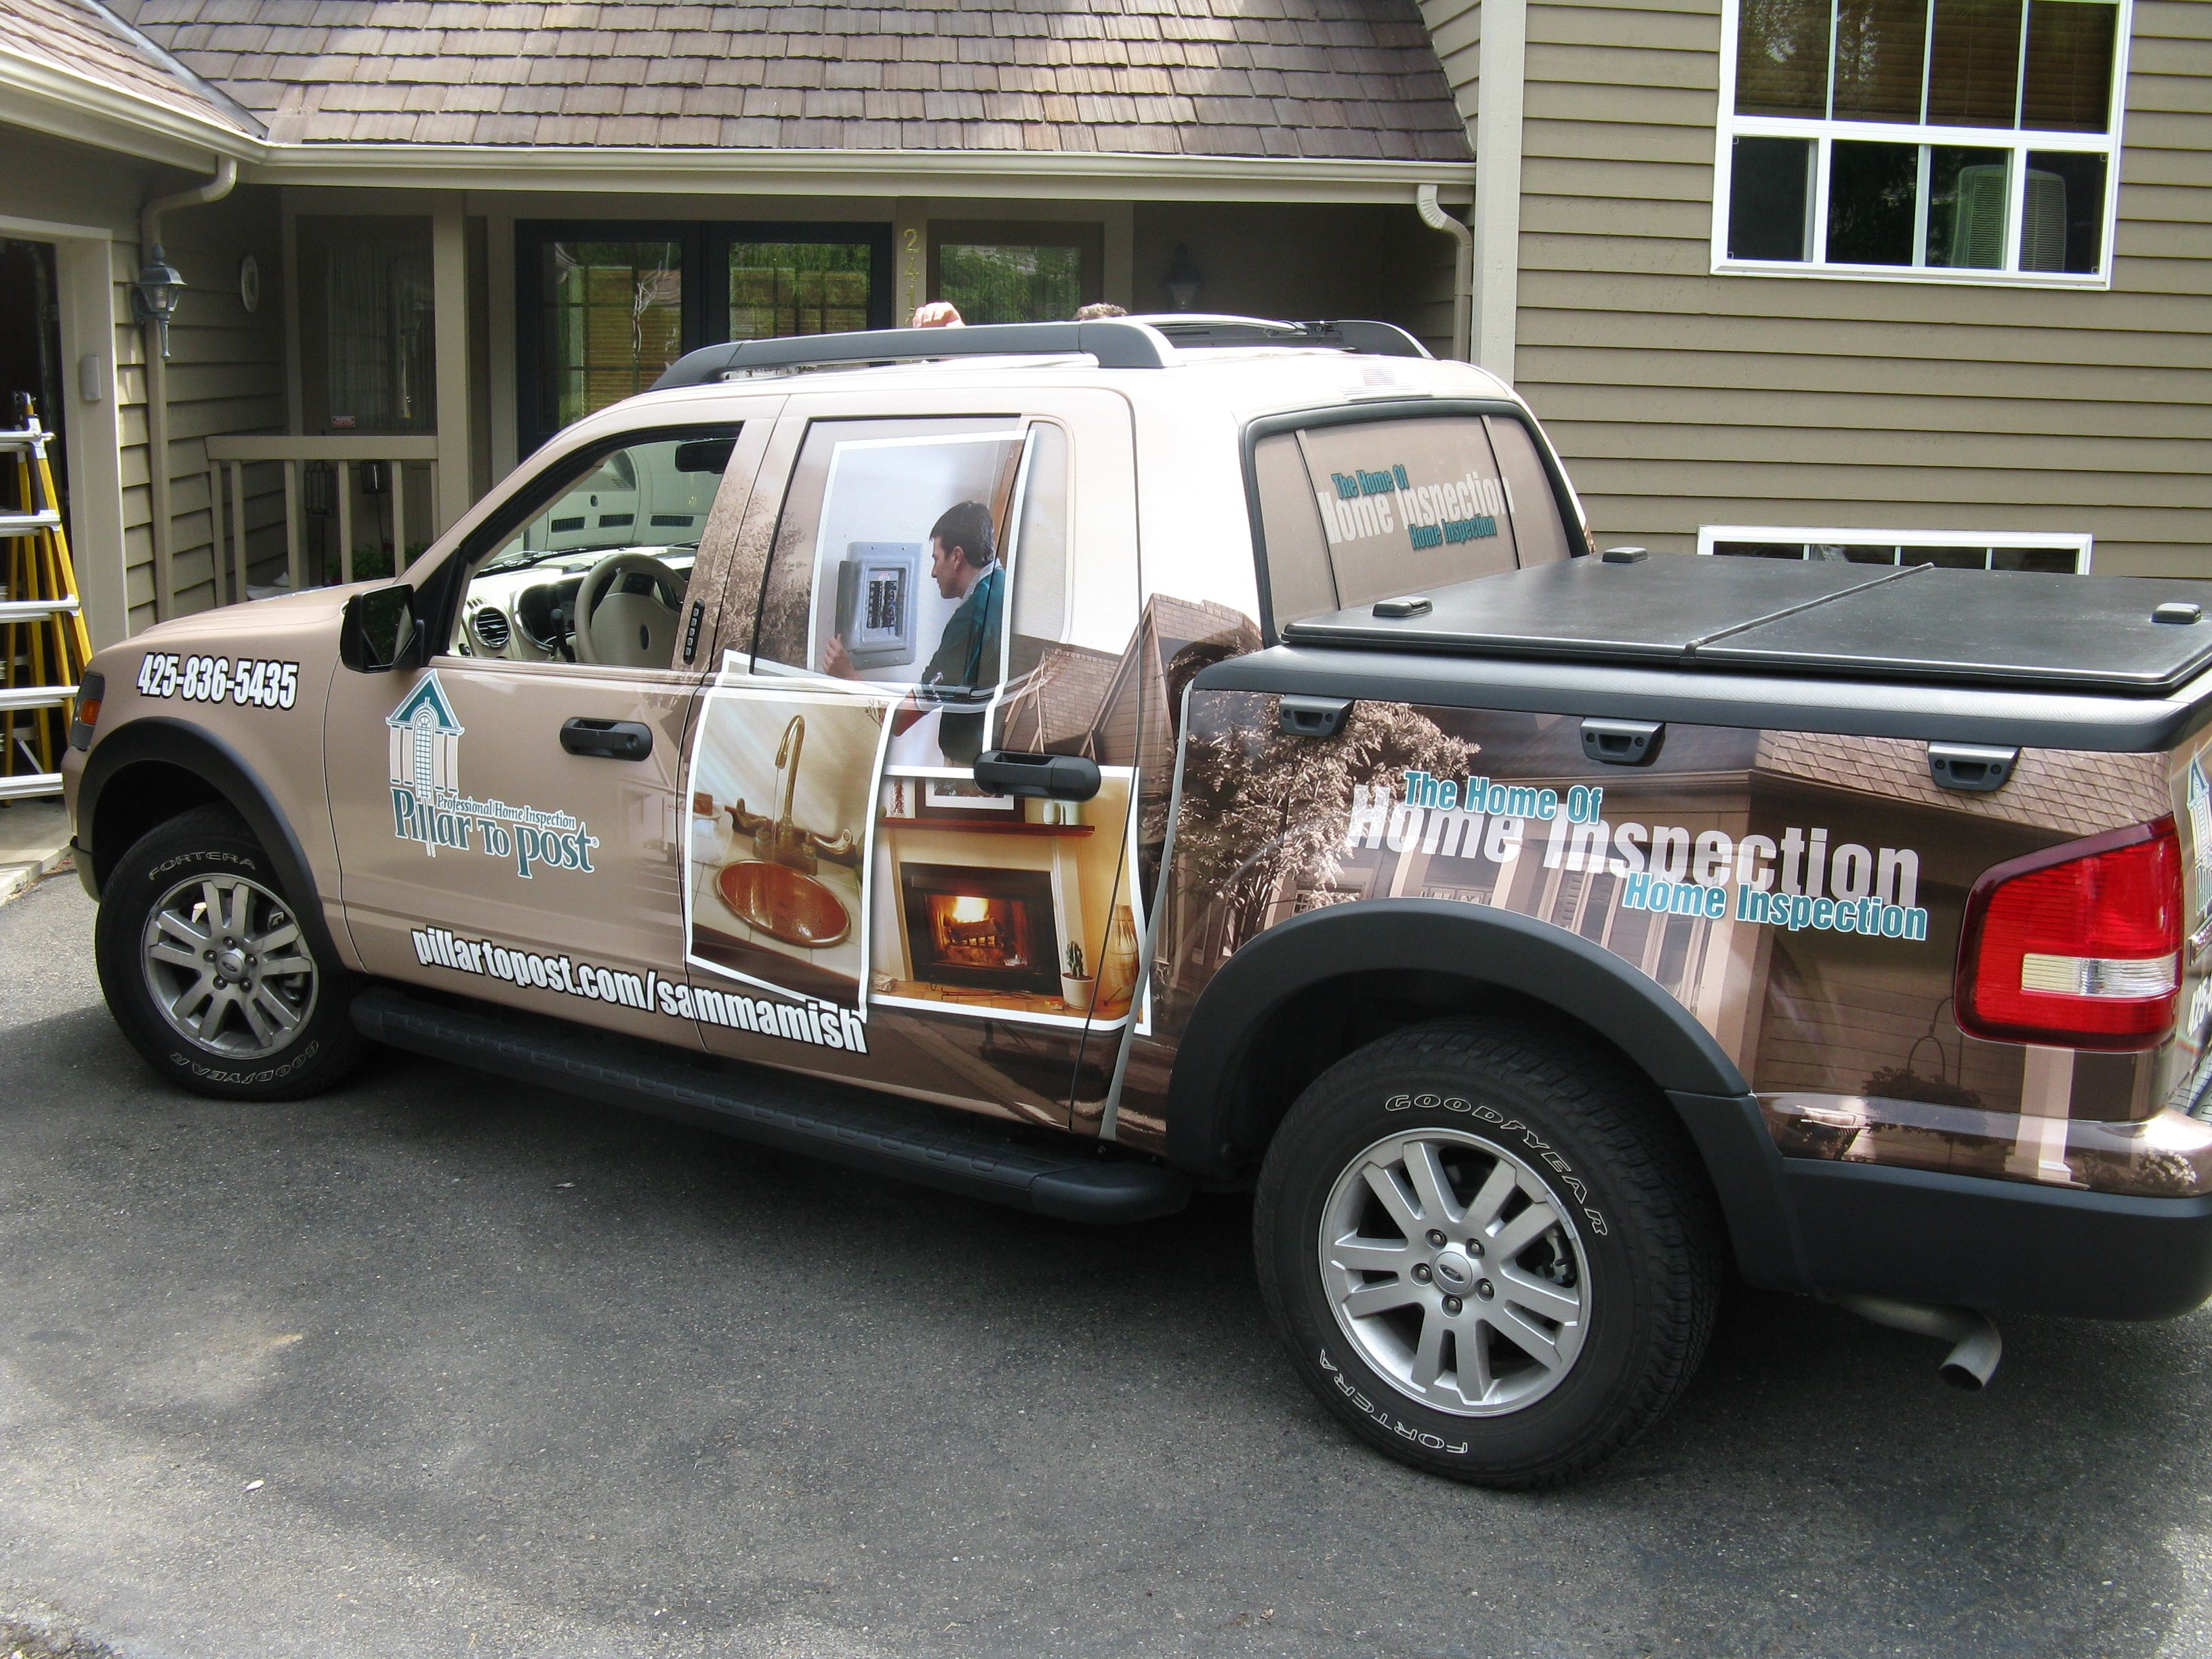 Full vehicle wrap food truck steak rattle and roll 3m vehicle wraps inc com 888 916 9727 vehicle wraps inc our wraps pinterest wrap food